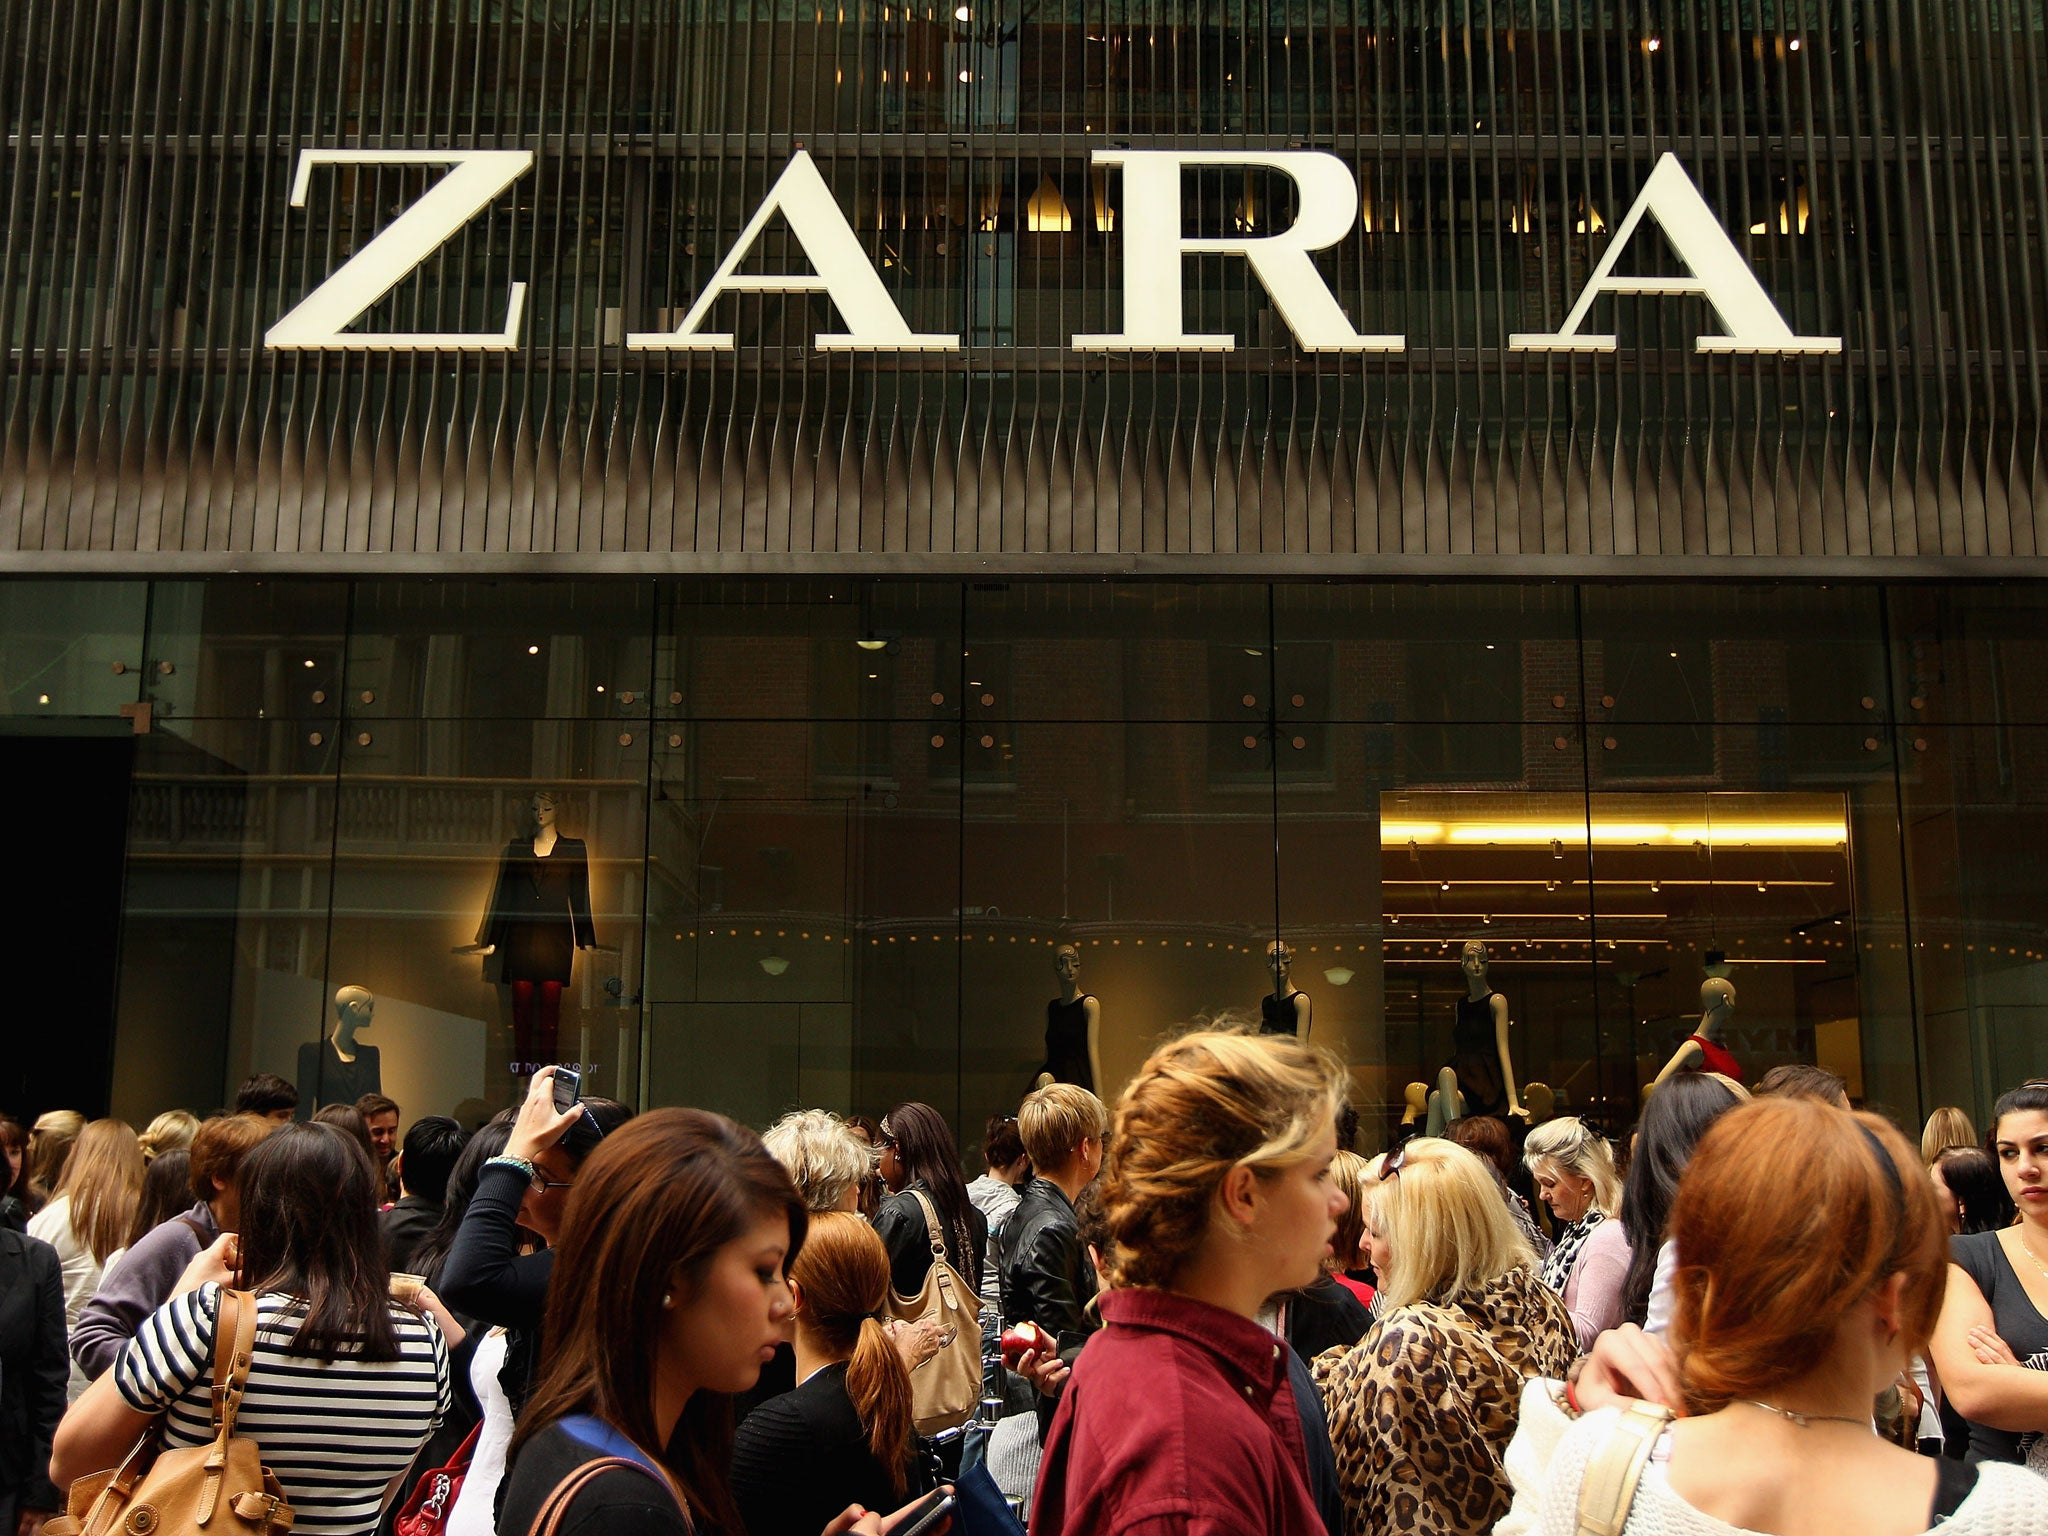 zara a spanish retailer goes to the top of world fashion